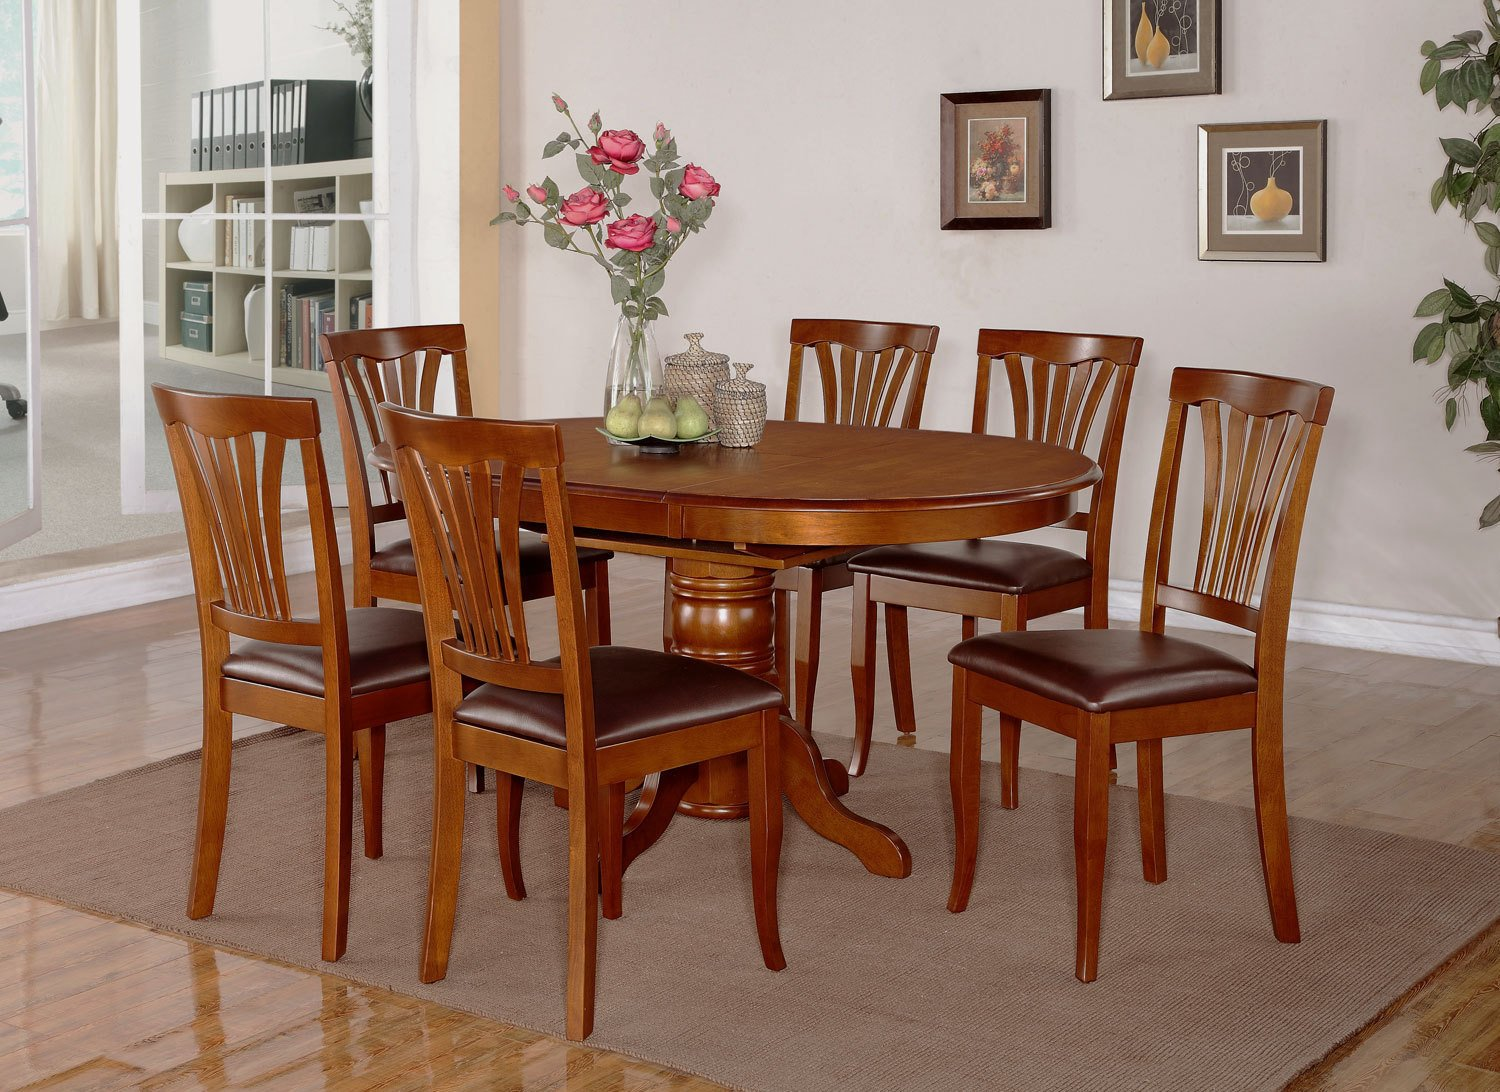 7pc Dining Room Set Oval Table And 4 Faux Leather